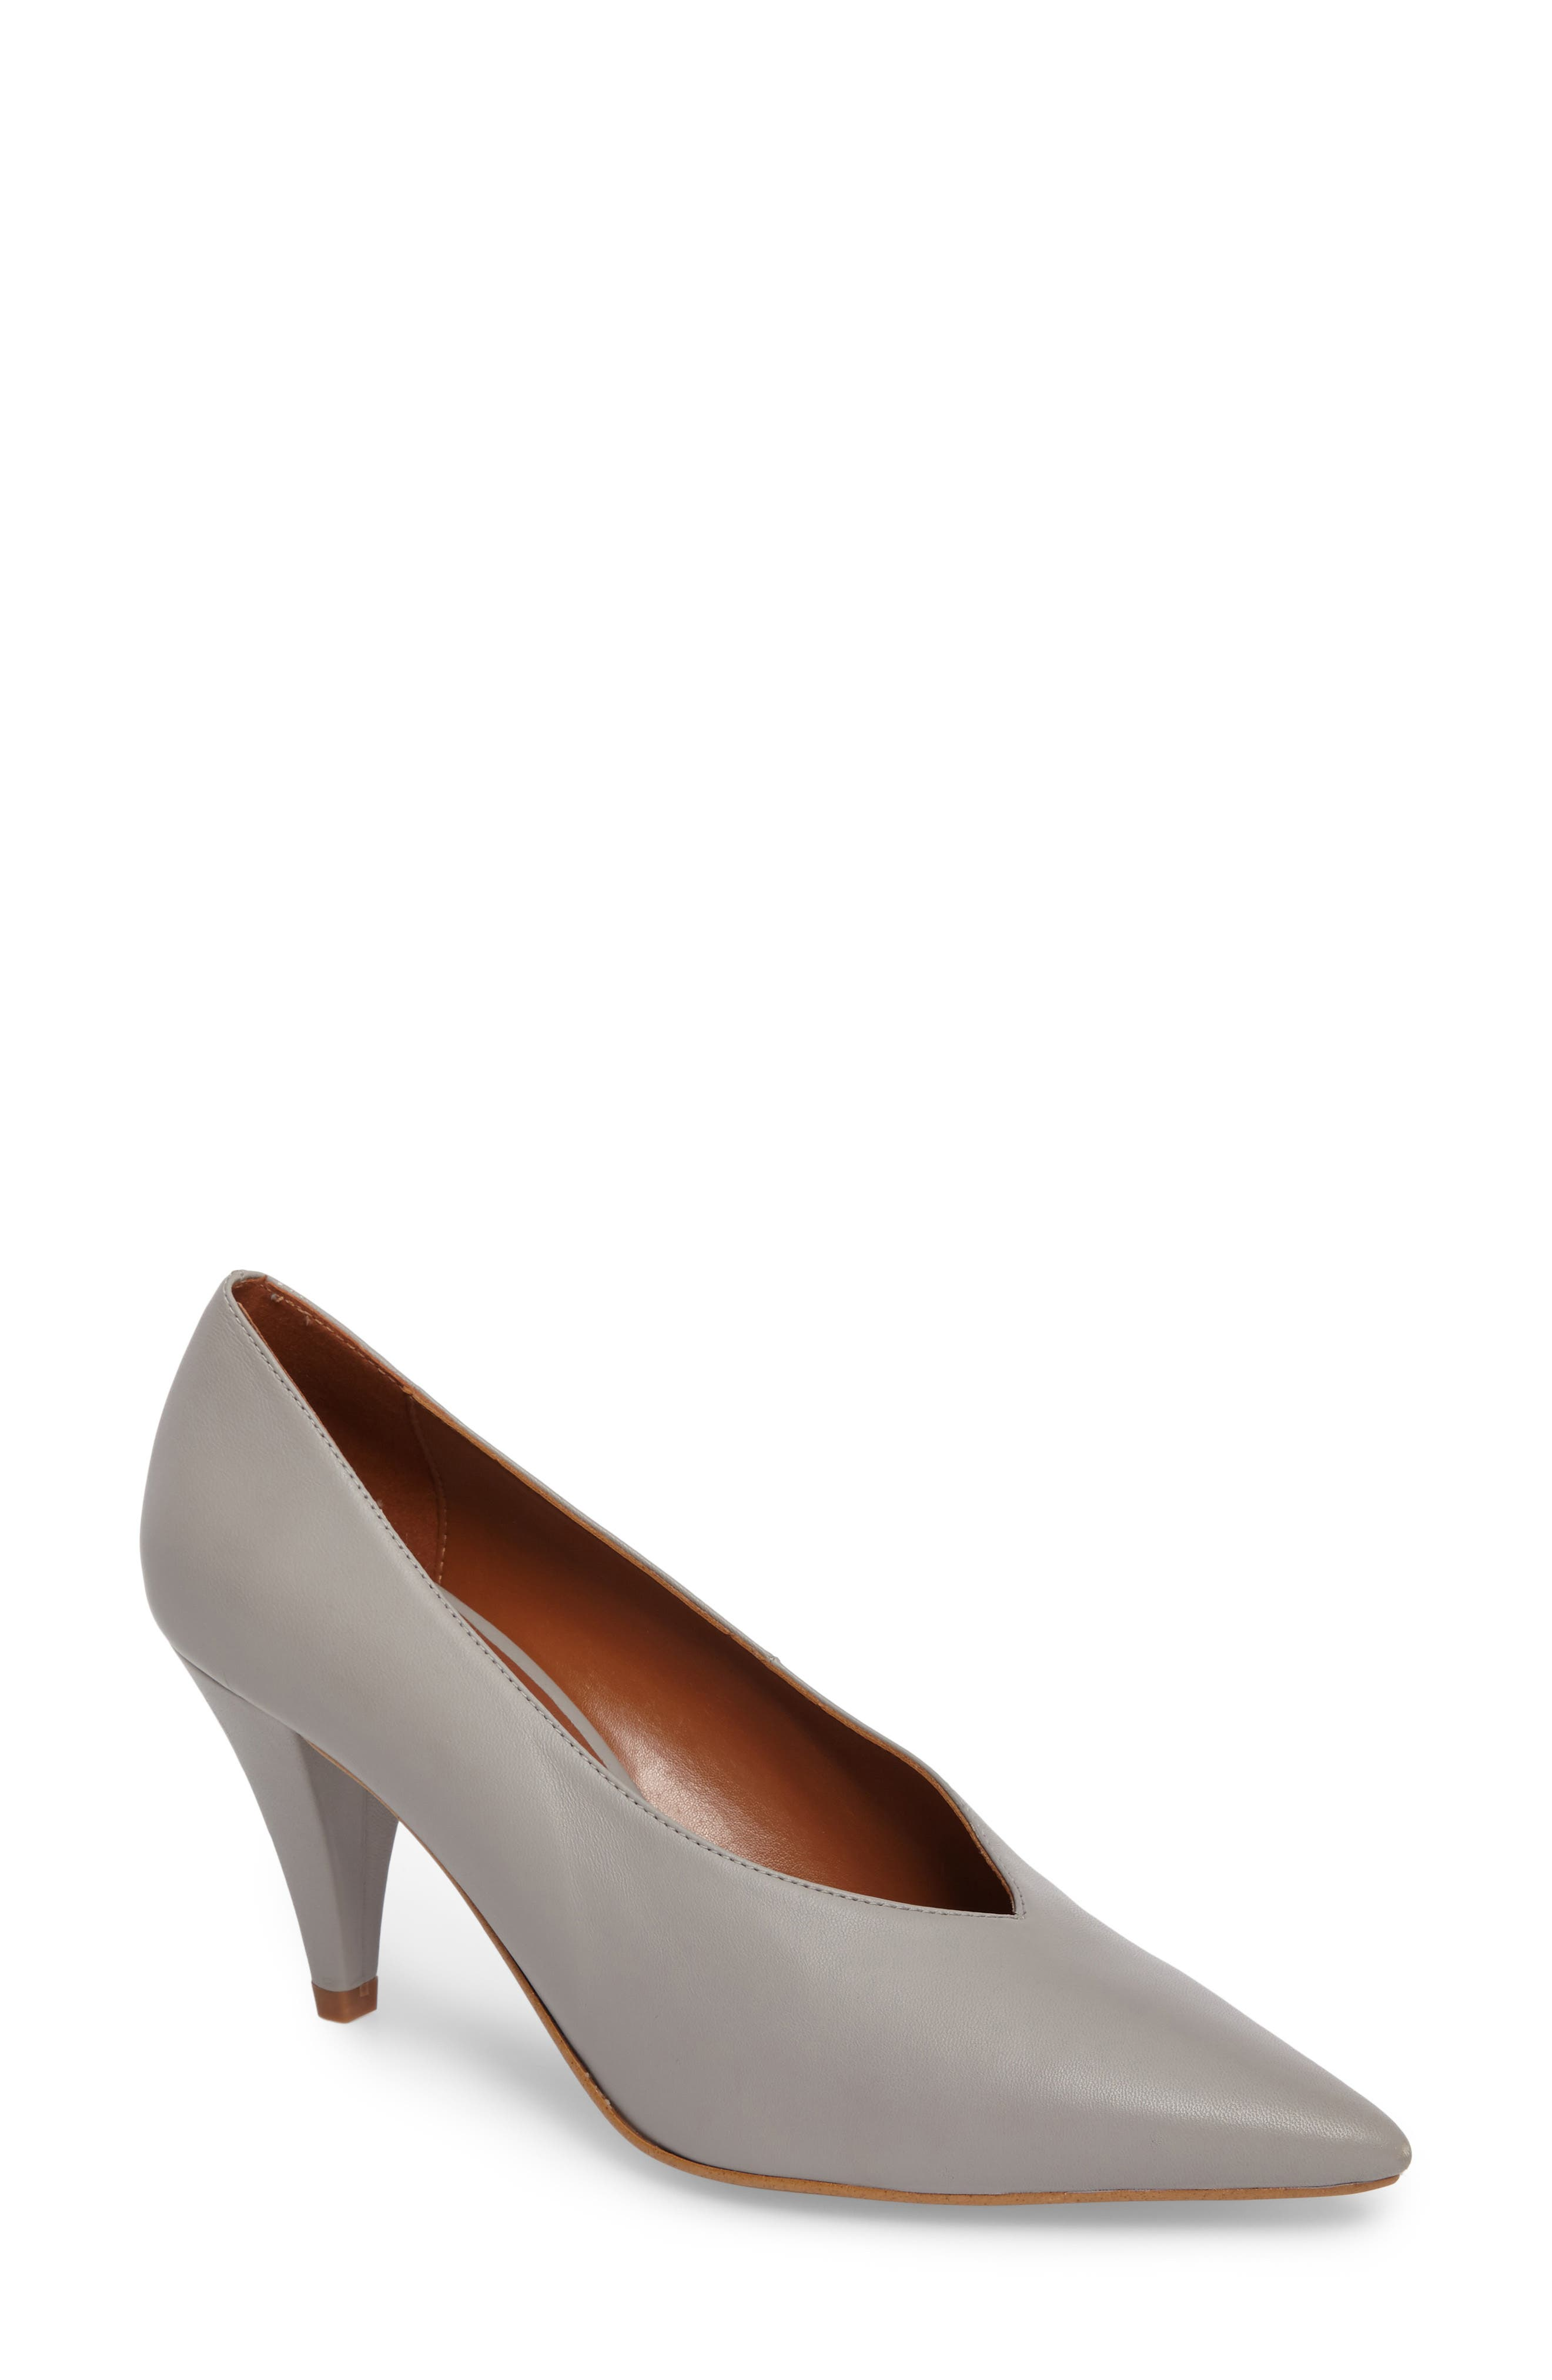 Journal Pointy Toe Pump,                         Main,                         color, 020